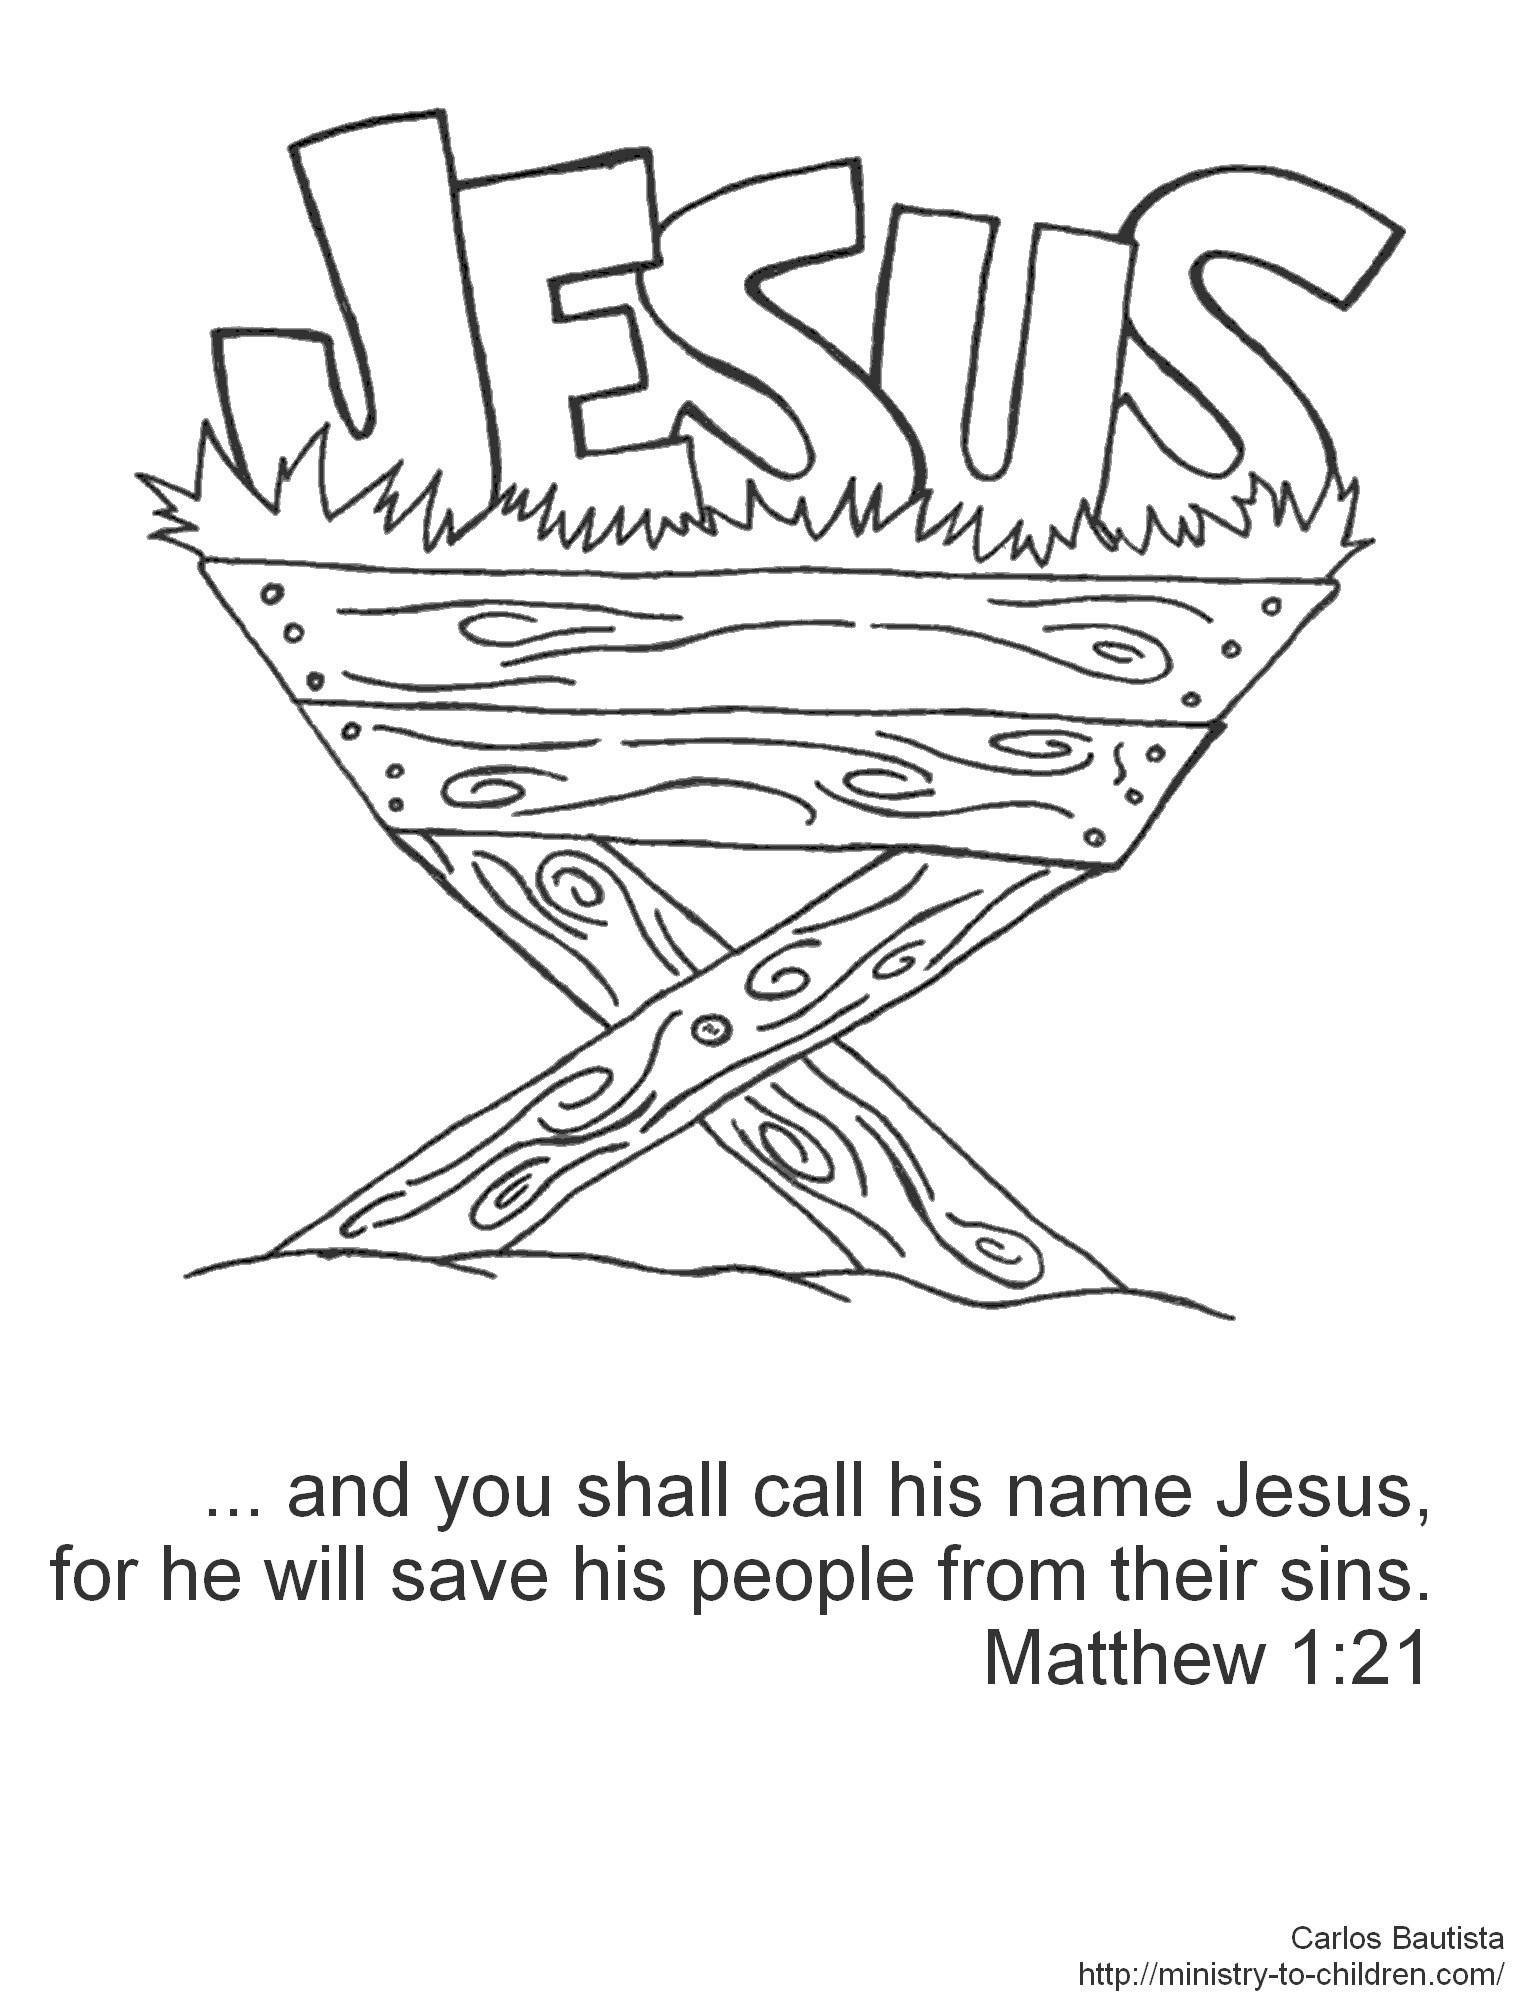 bible verse christian coloring pages 30 kids christian coloring pages collection coloring sheets bible pages coloring christian verse